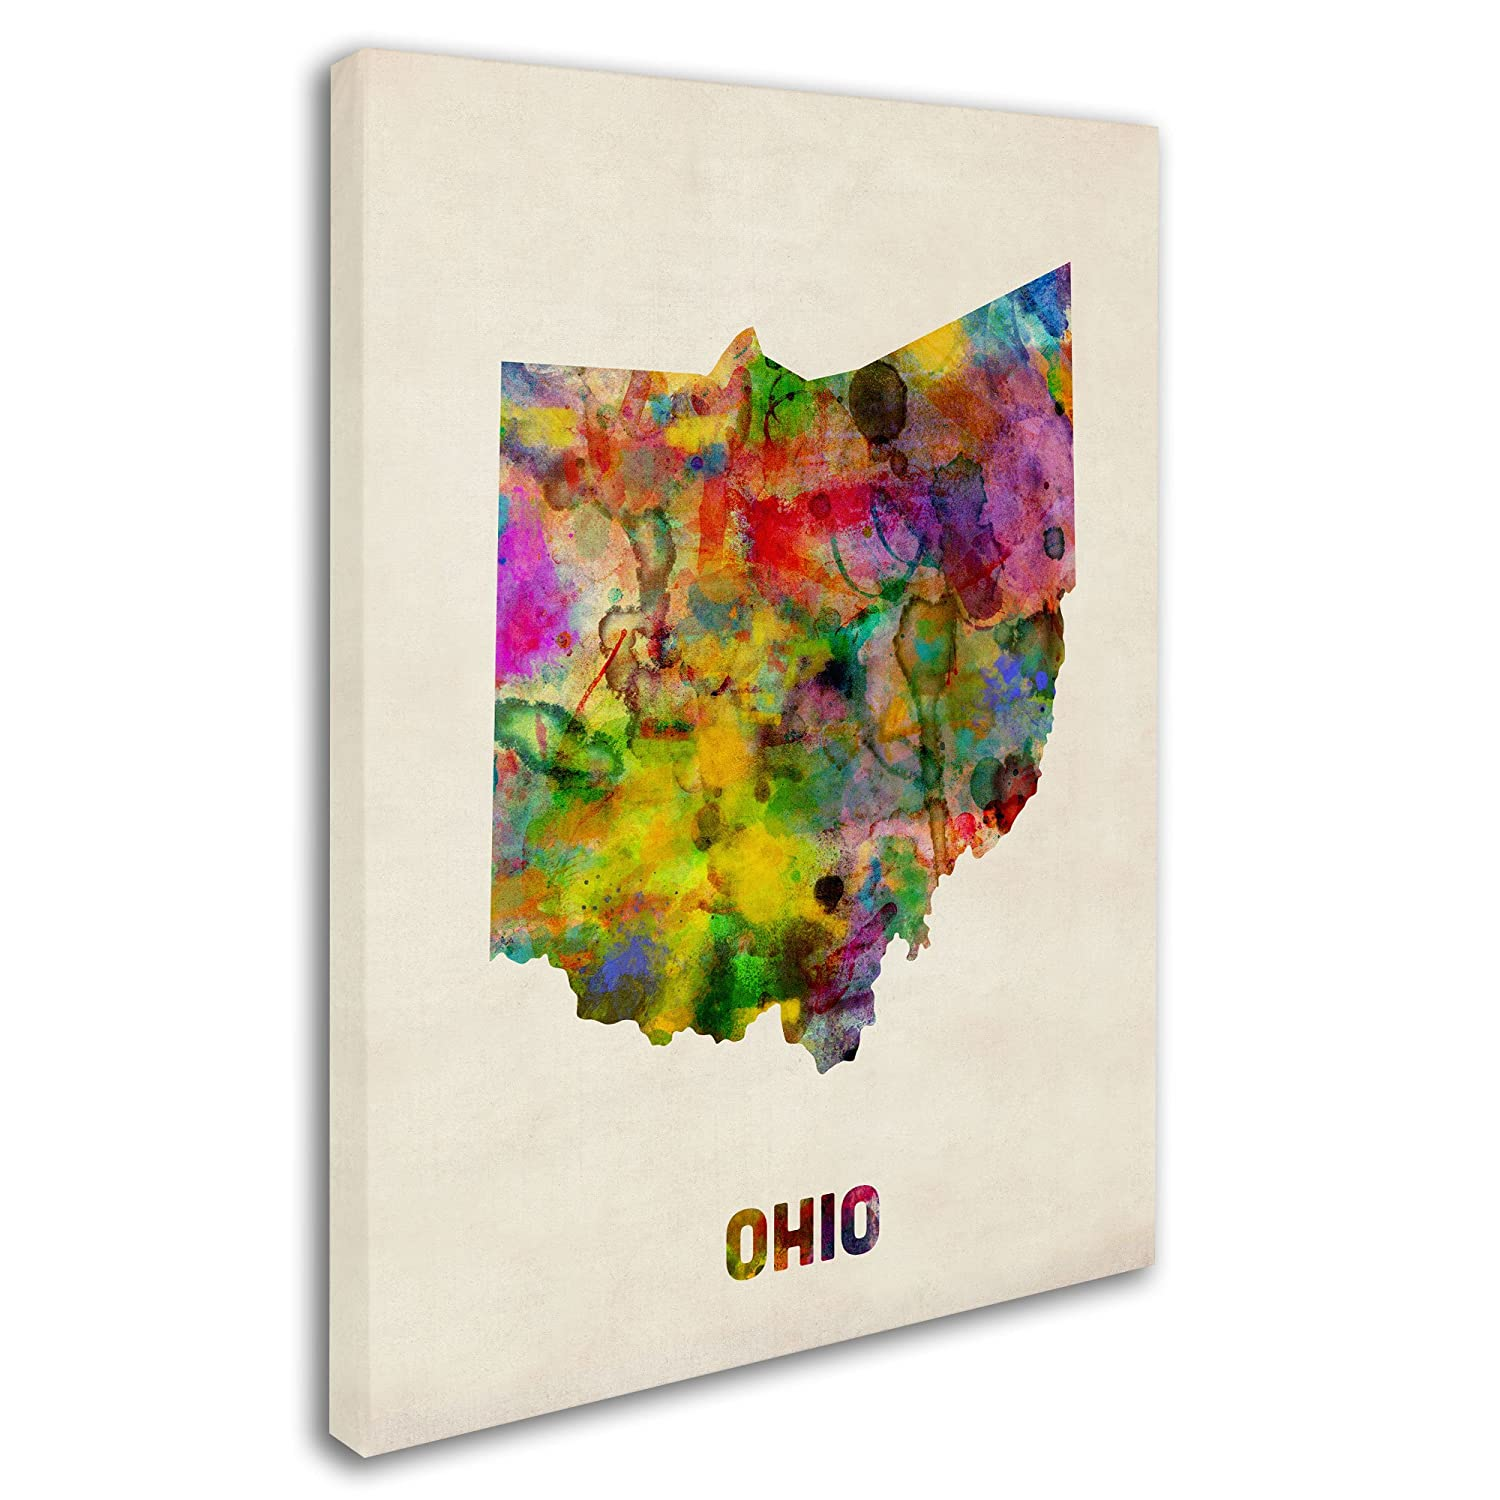 Ohio Map by Michael Tompsett, 18 by 24-Inch Canvas Wall Art